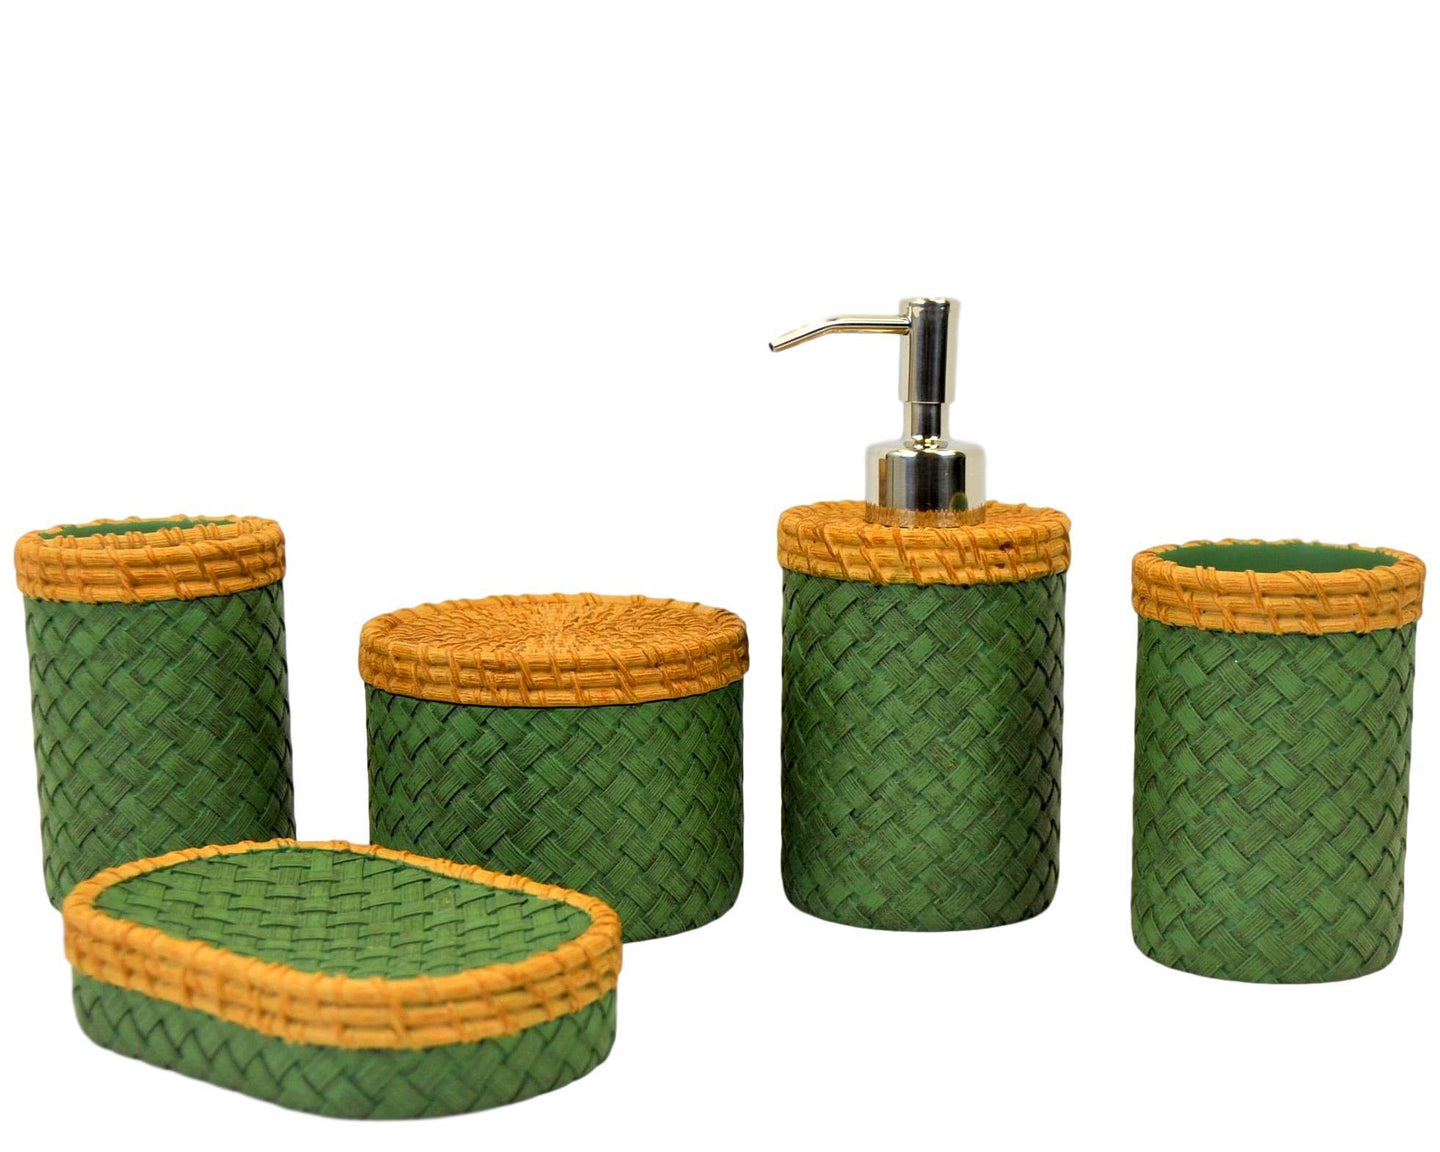 Bathroom Set of Beige and Green Weave Design | Rainbow Elite Collection - Nature Home Decor